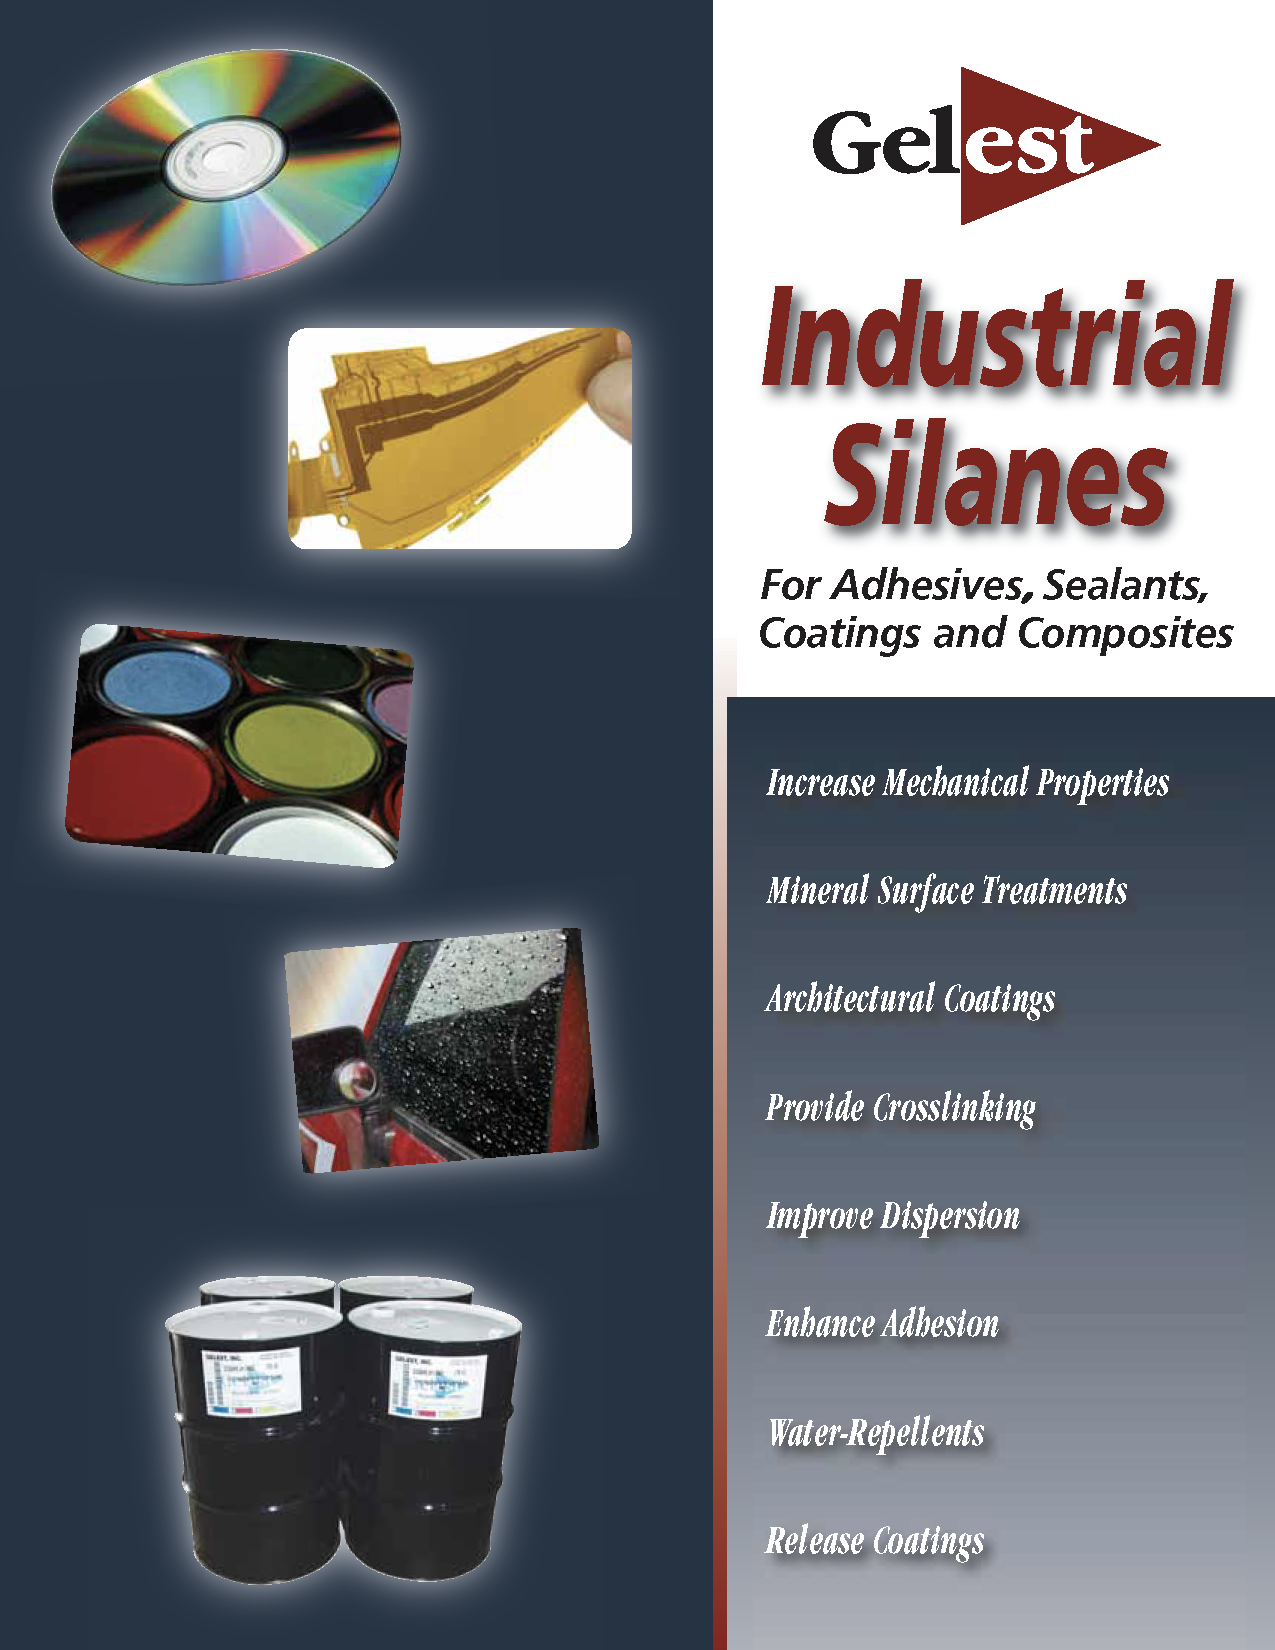 Industrial Silanes: for Adhesives, Sealants, Coatings, and Composites